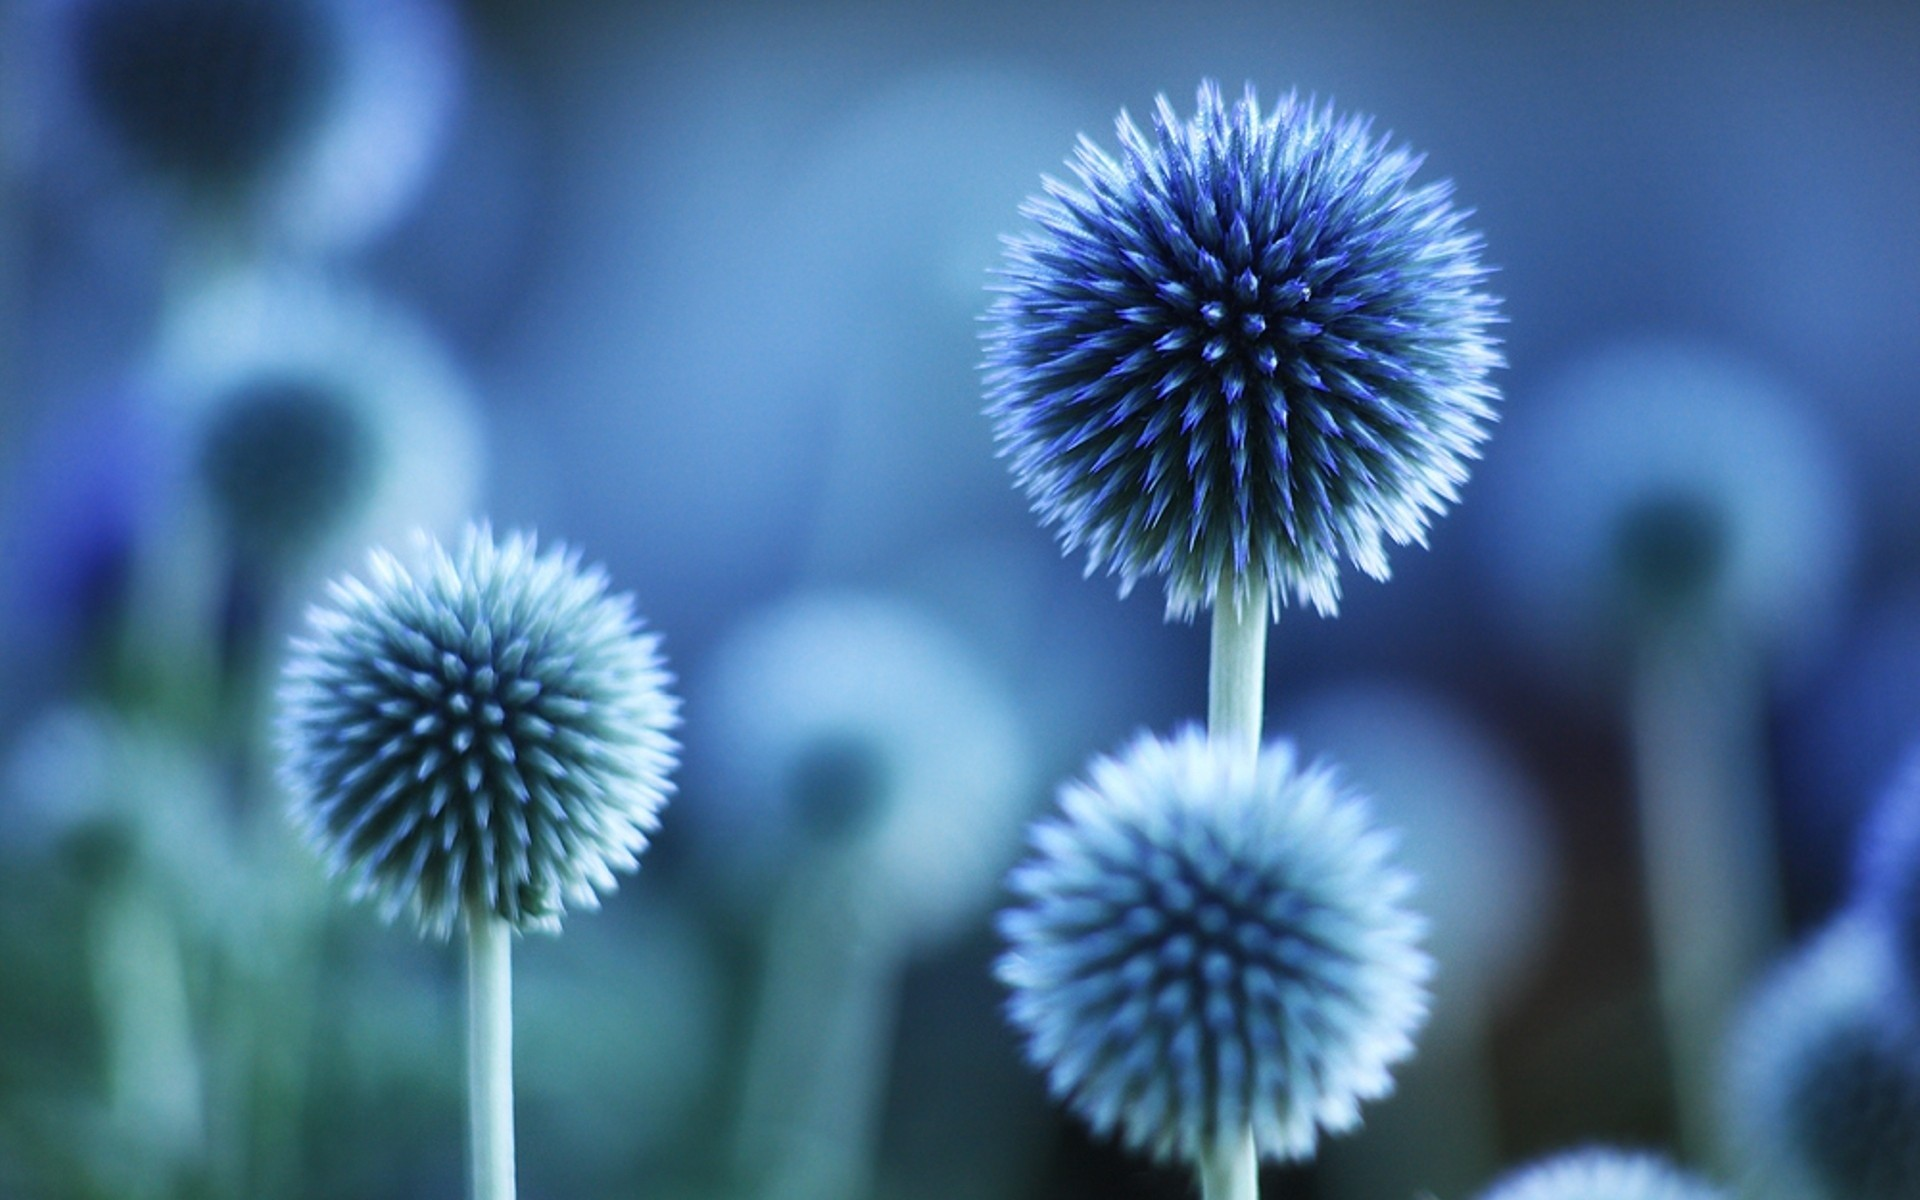 blue flowers wallpaper ·①